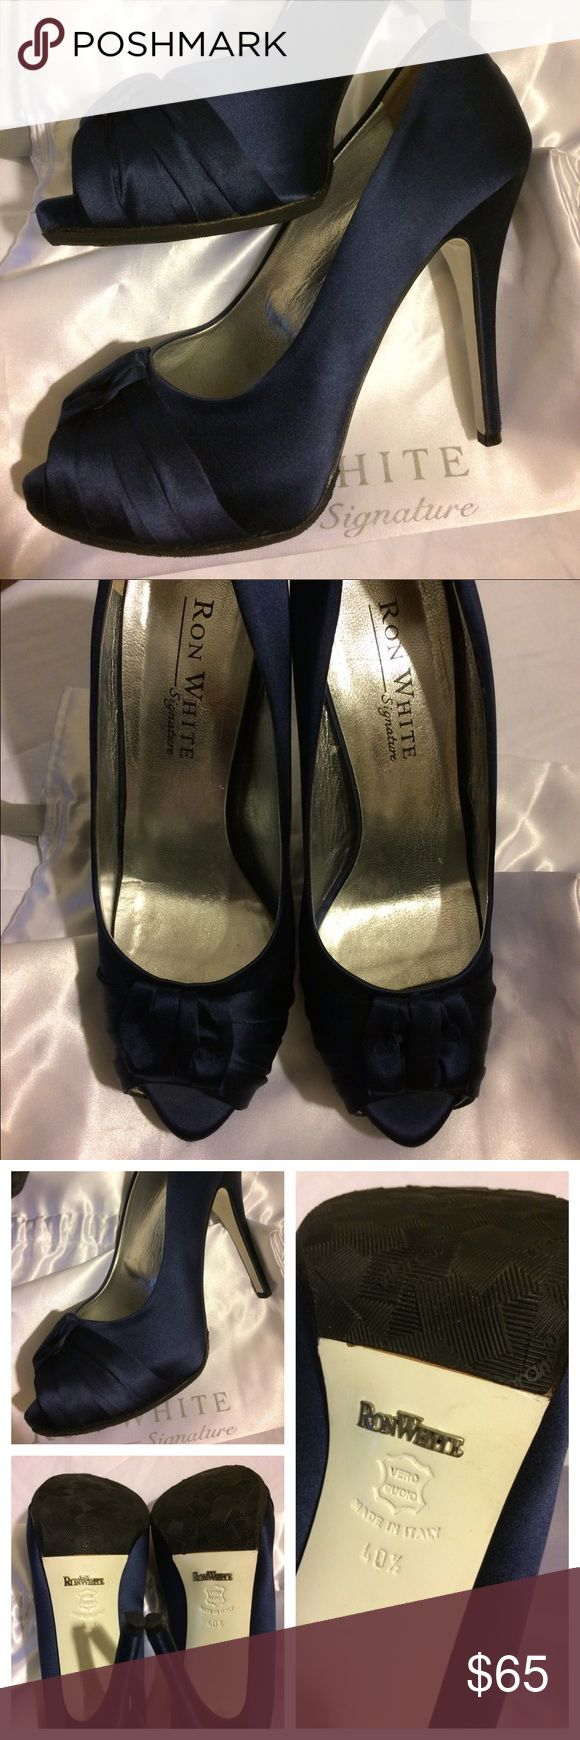 """Ron White Designer Satin Navy Heels Ron White Signature designer heels, retailed at $585. Style is """"Jessica."""" Size 40.5.  Classic navy color.  Previously worn just a handful of times, in great condition.  No snags or stains on satin. 5"""" heel.  Leather soles with Vibram coating. These are the most comfortable heels I've ever worn because of the Vibram. I just  Comes with box and dust bag. Ron White Shoes Heels"""